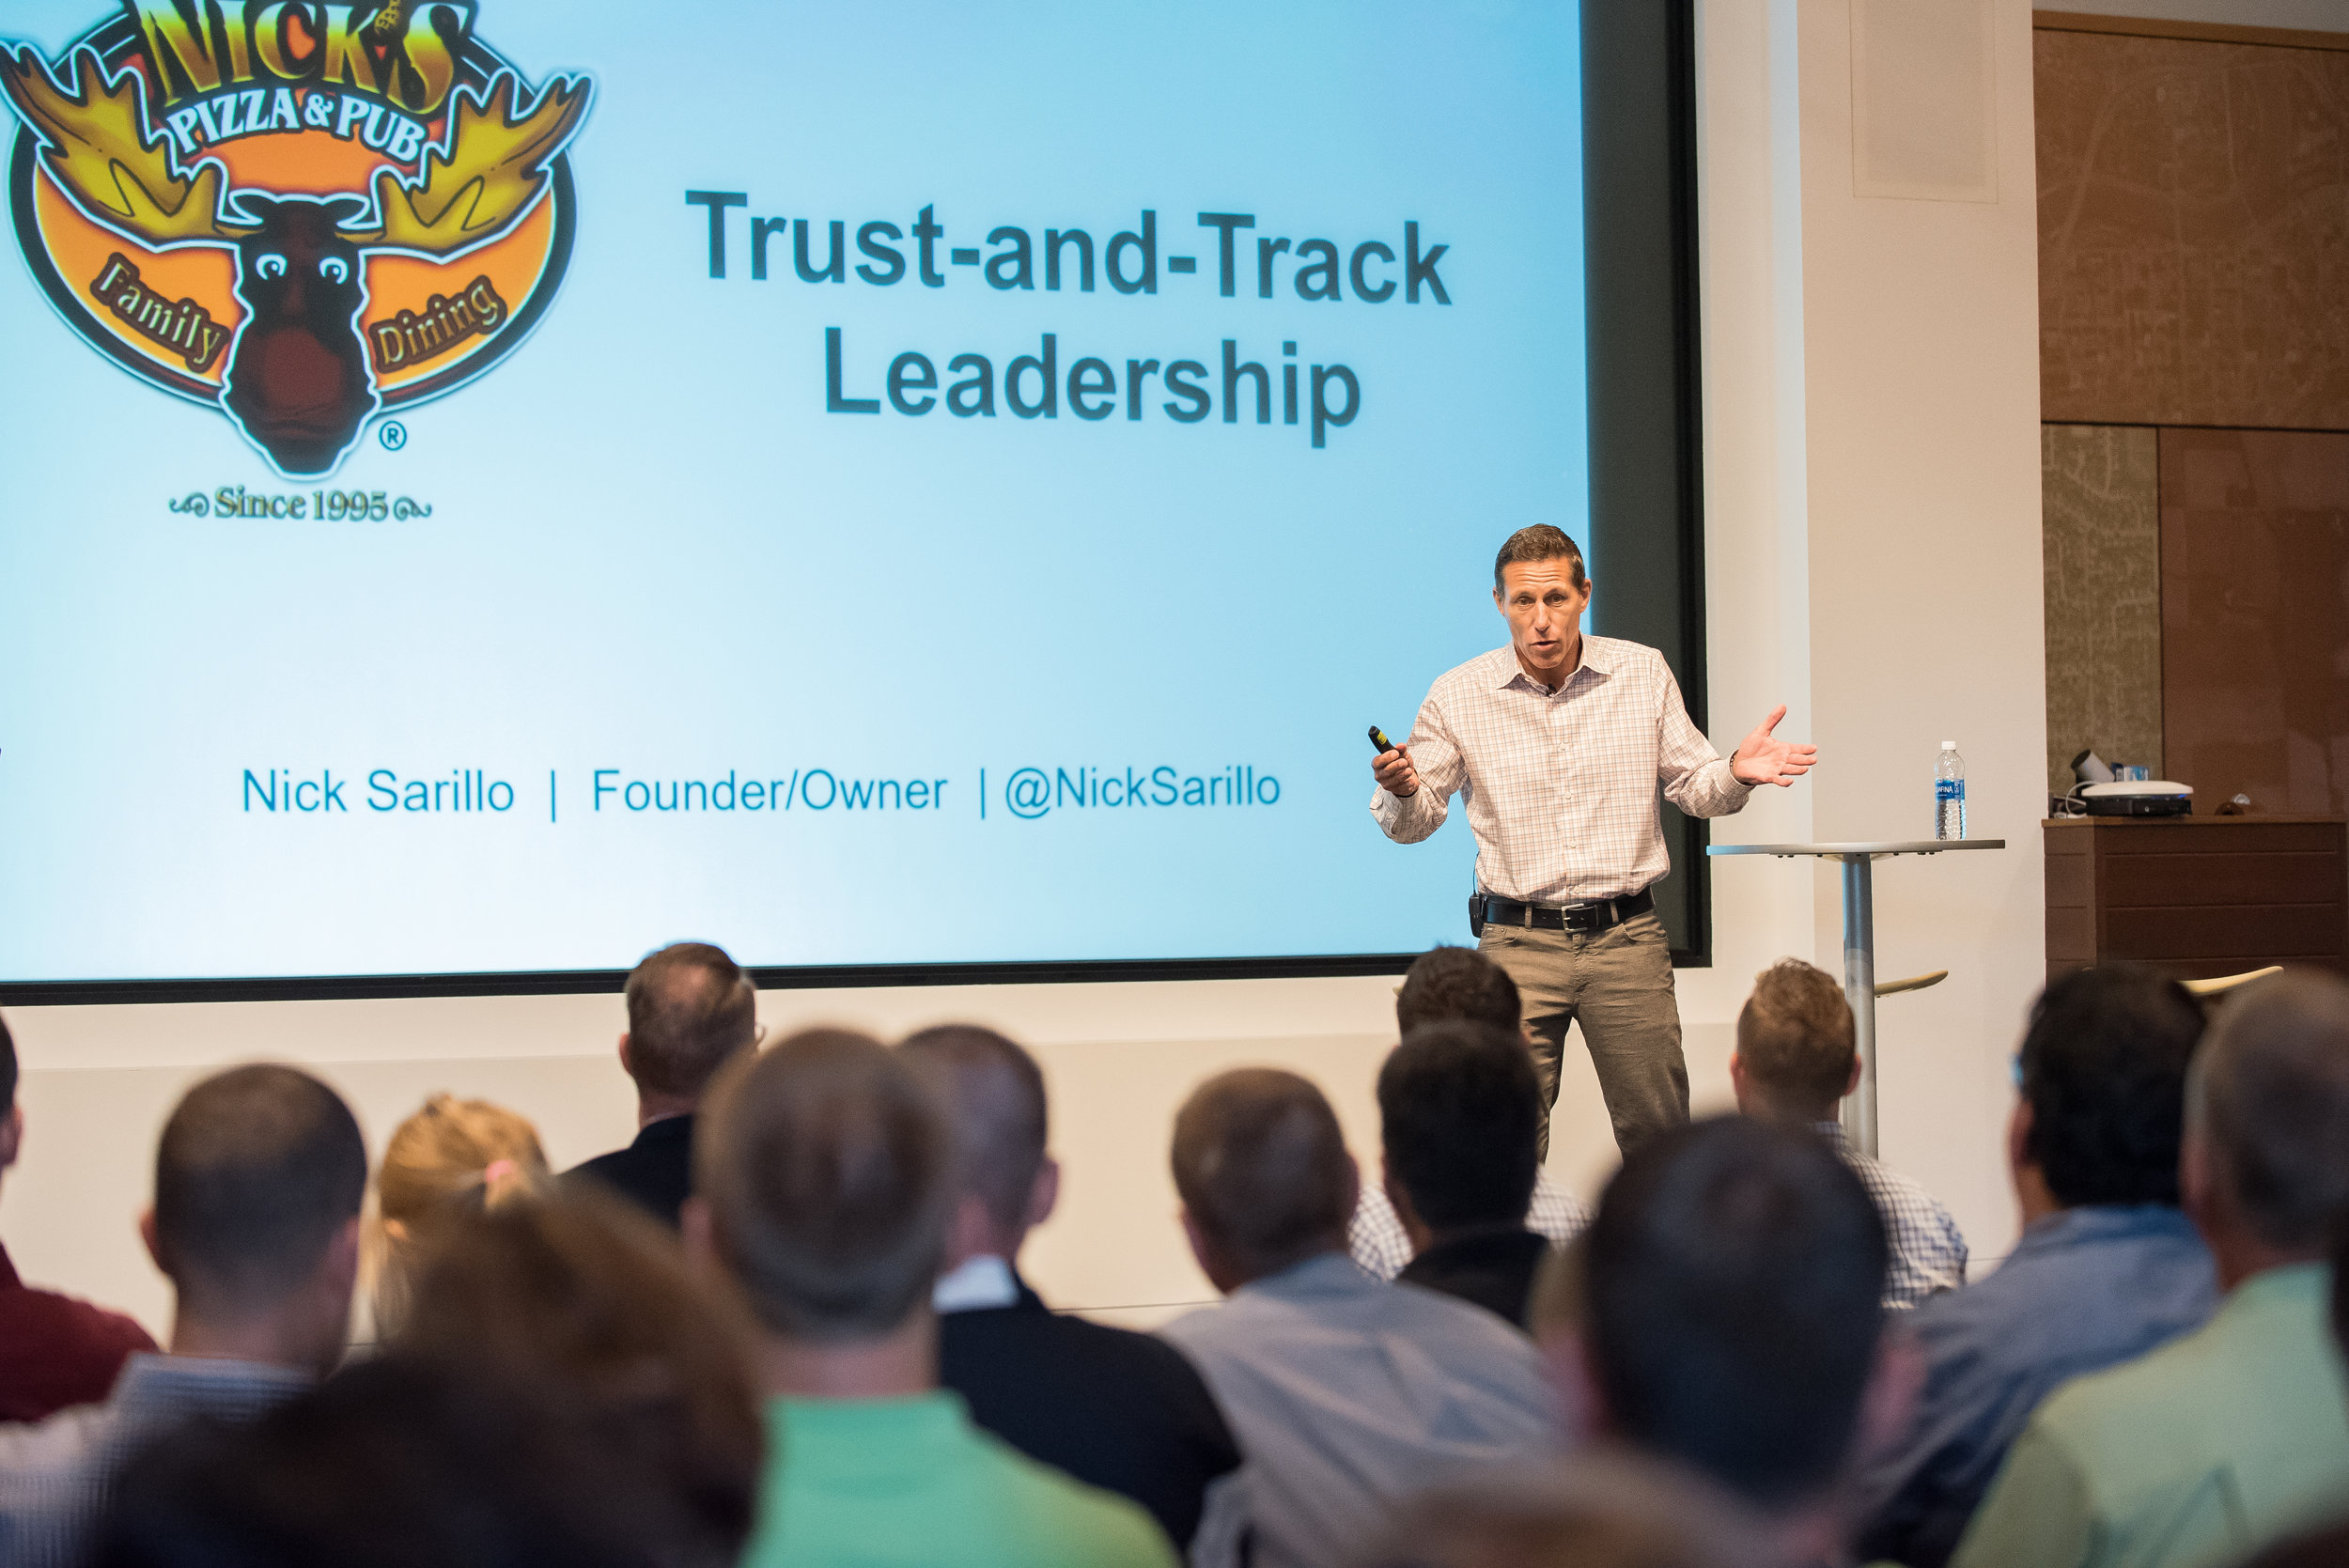 Nick Sarillo speaking on the Trust-and-Track Leadership method